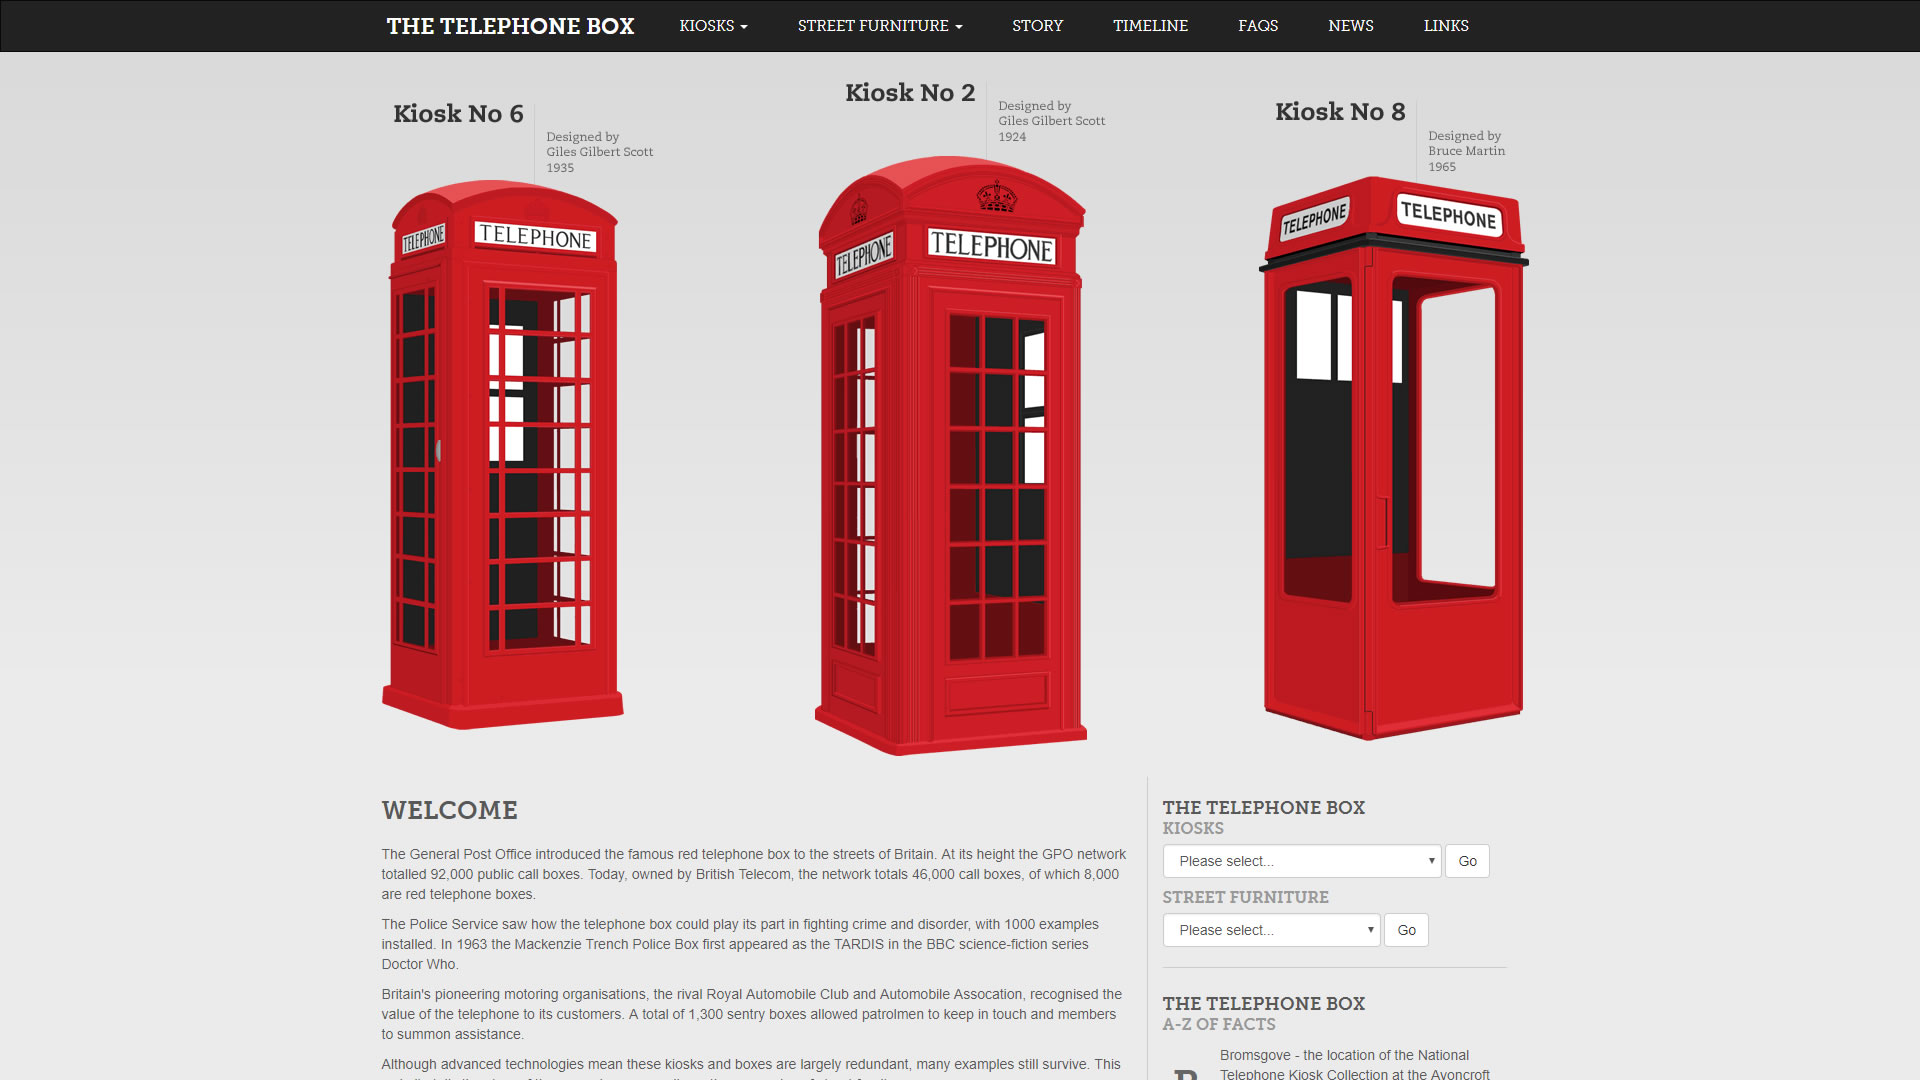 www.the-telephone-box.co.uk